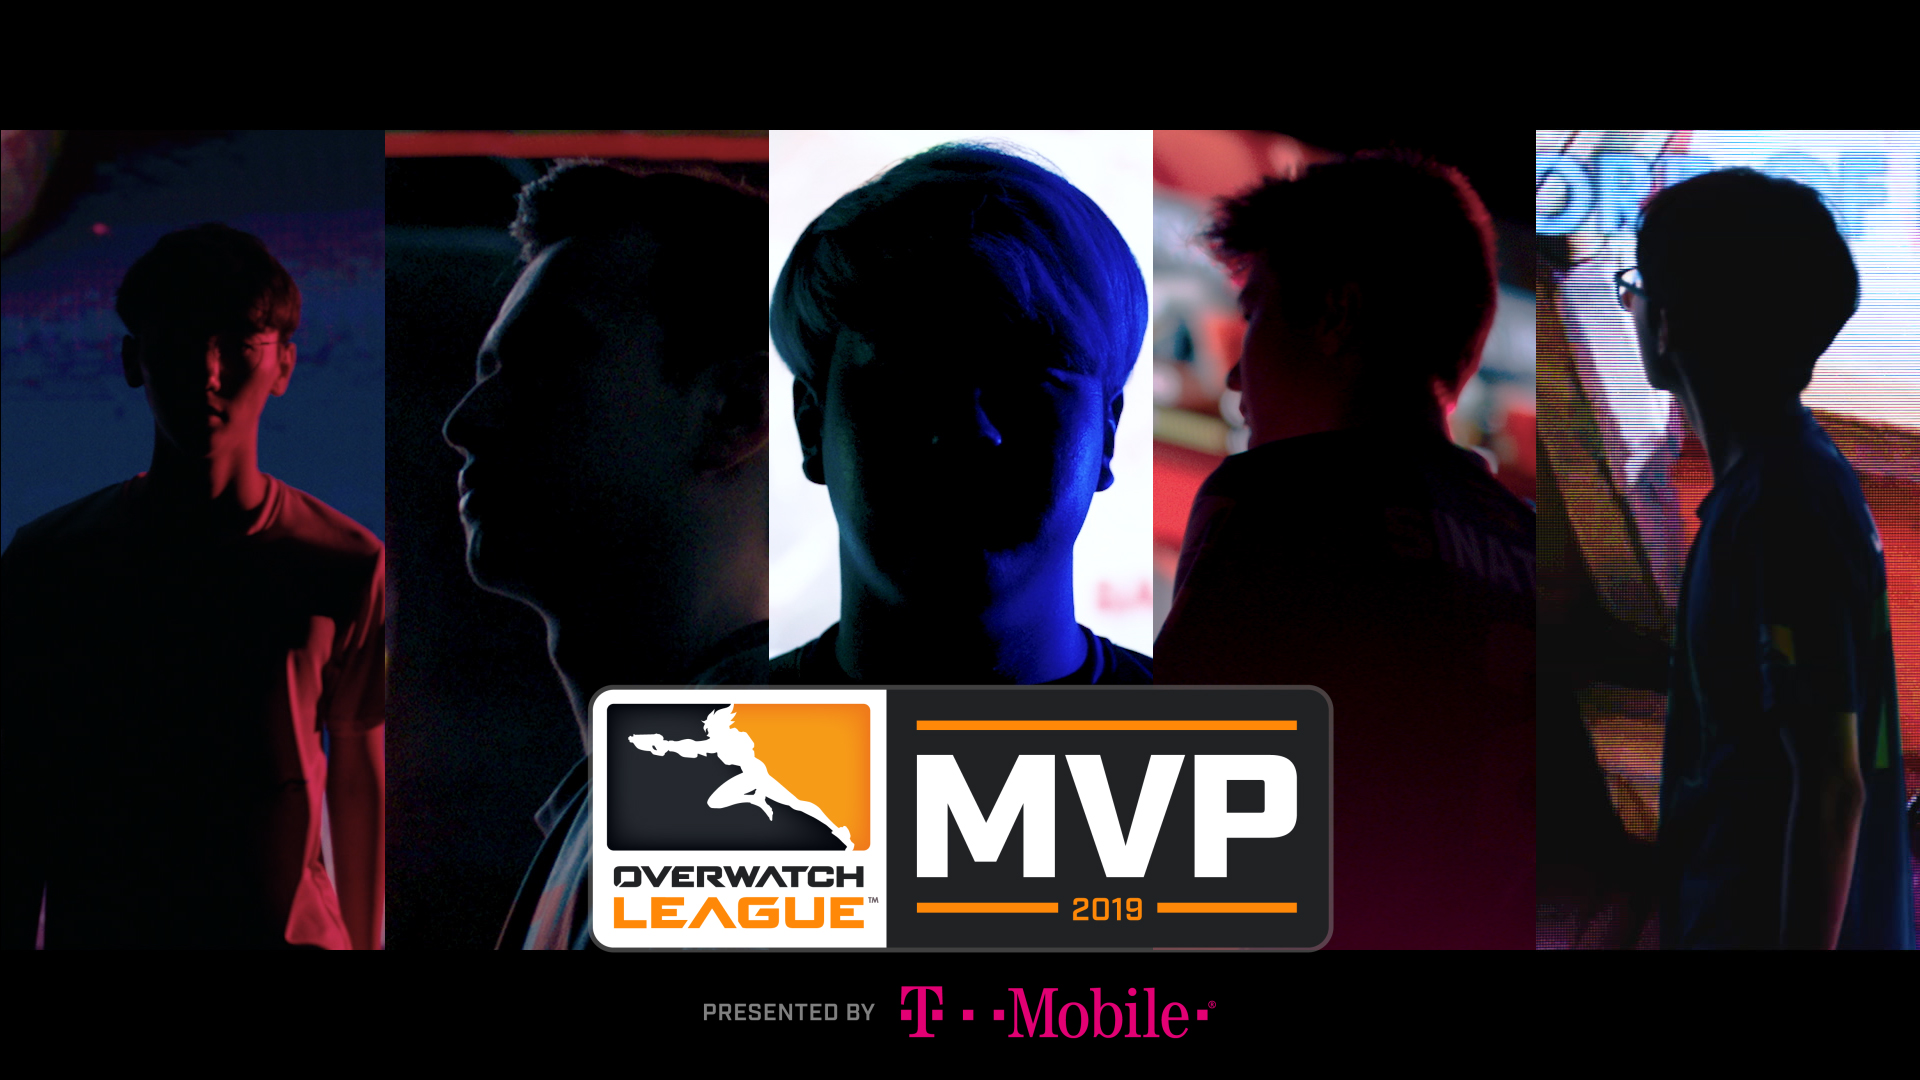 The 2019 Overwatch League MVP Candidates